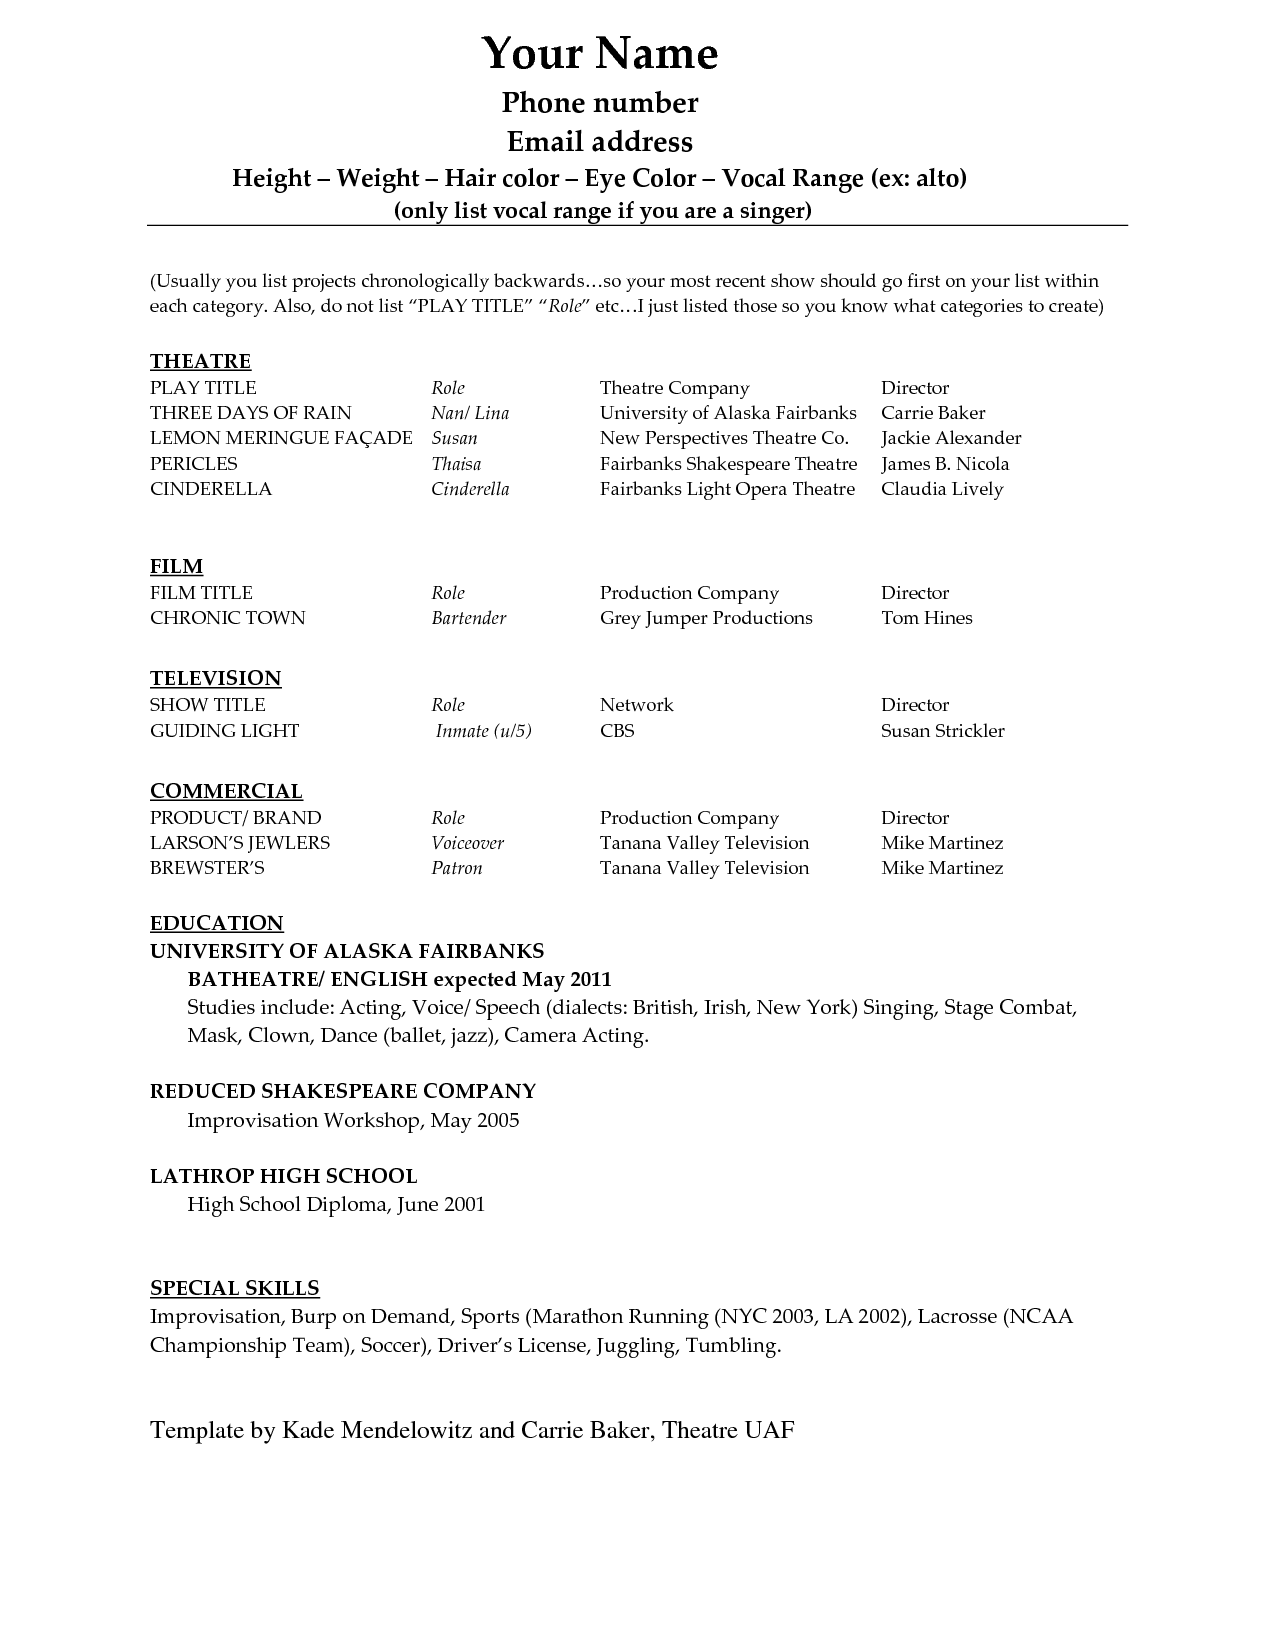 Acting Resume Template Download Free Http Www Resumecareer Info